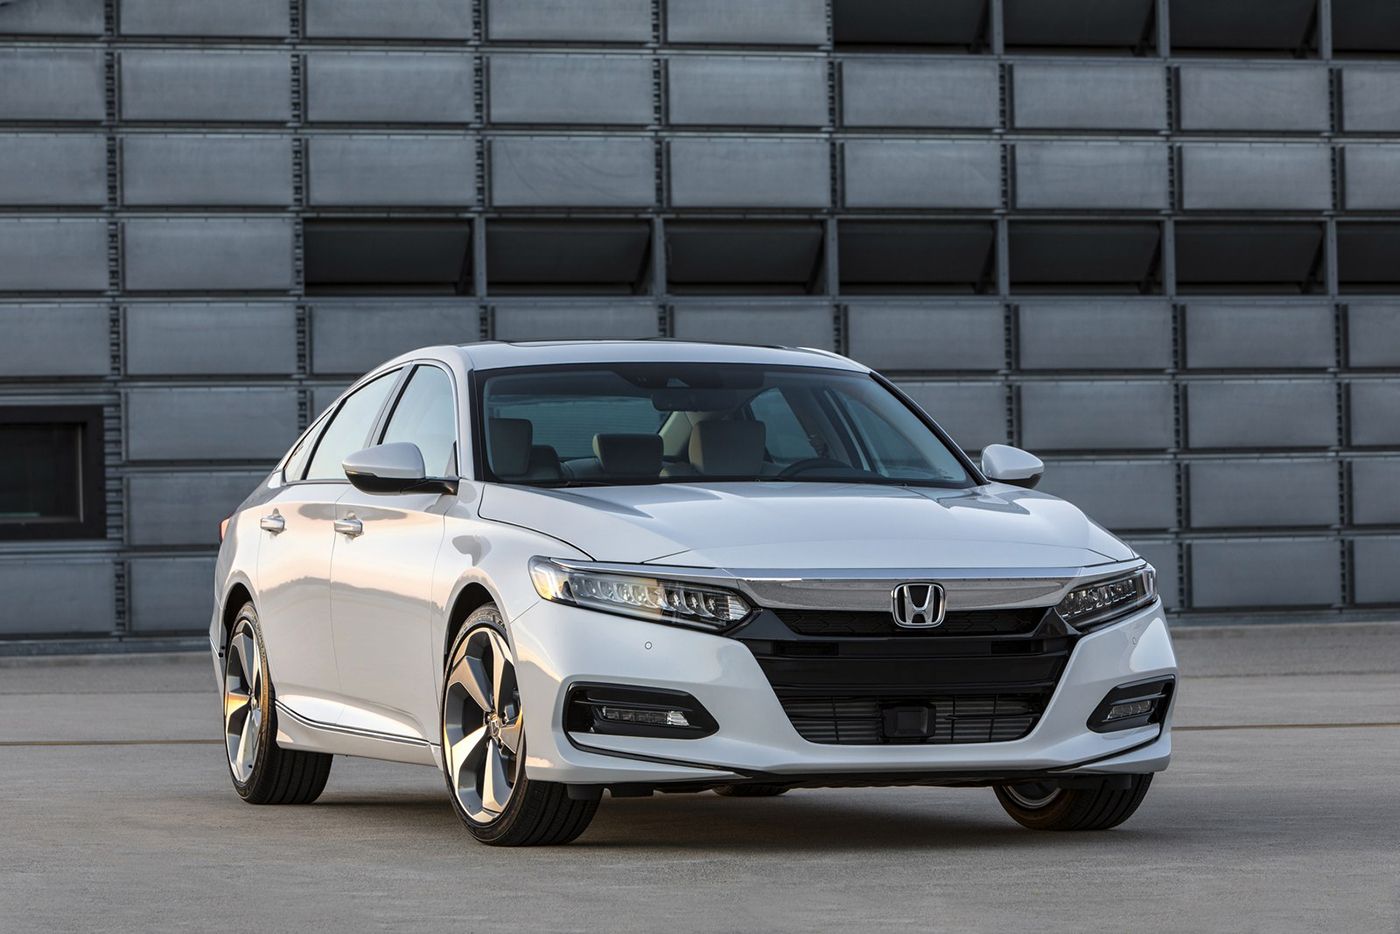 honda-accord-2018-1.jpg